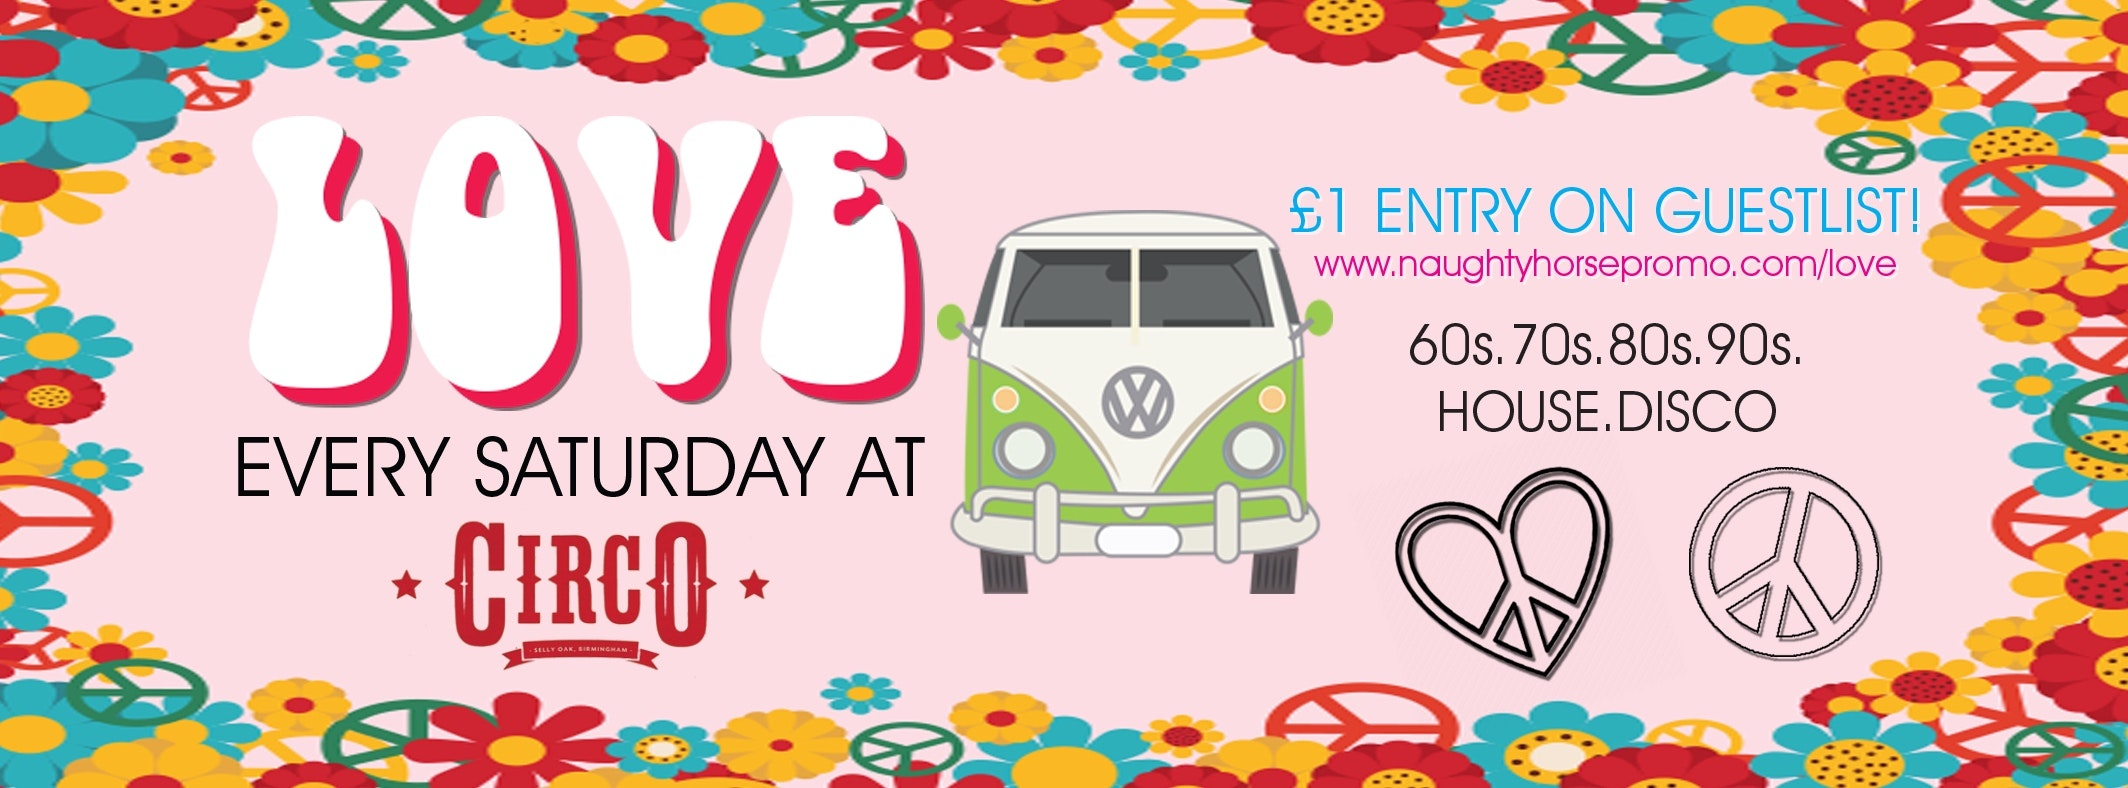 LOVE: Glitter Party – Saturdays at Circo (Selly Oak) – £1 Entry guestlist!